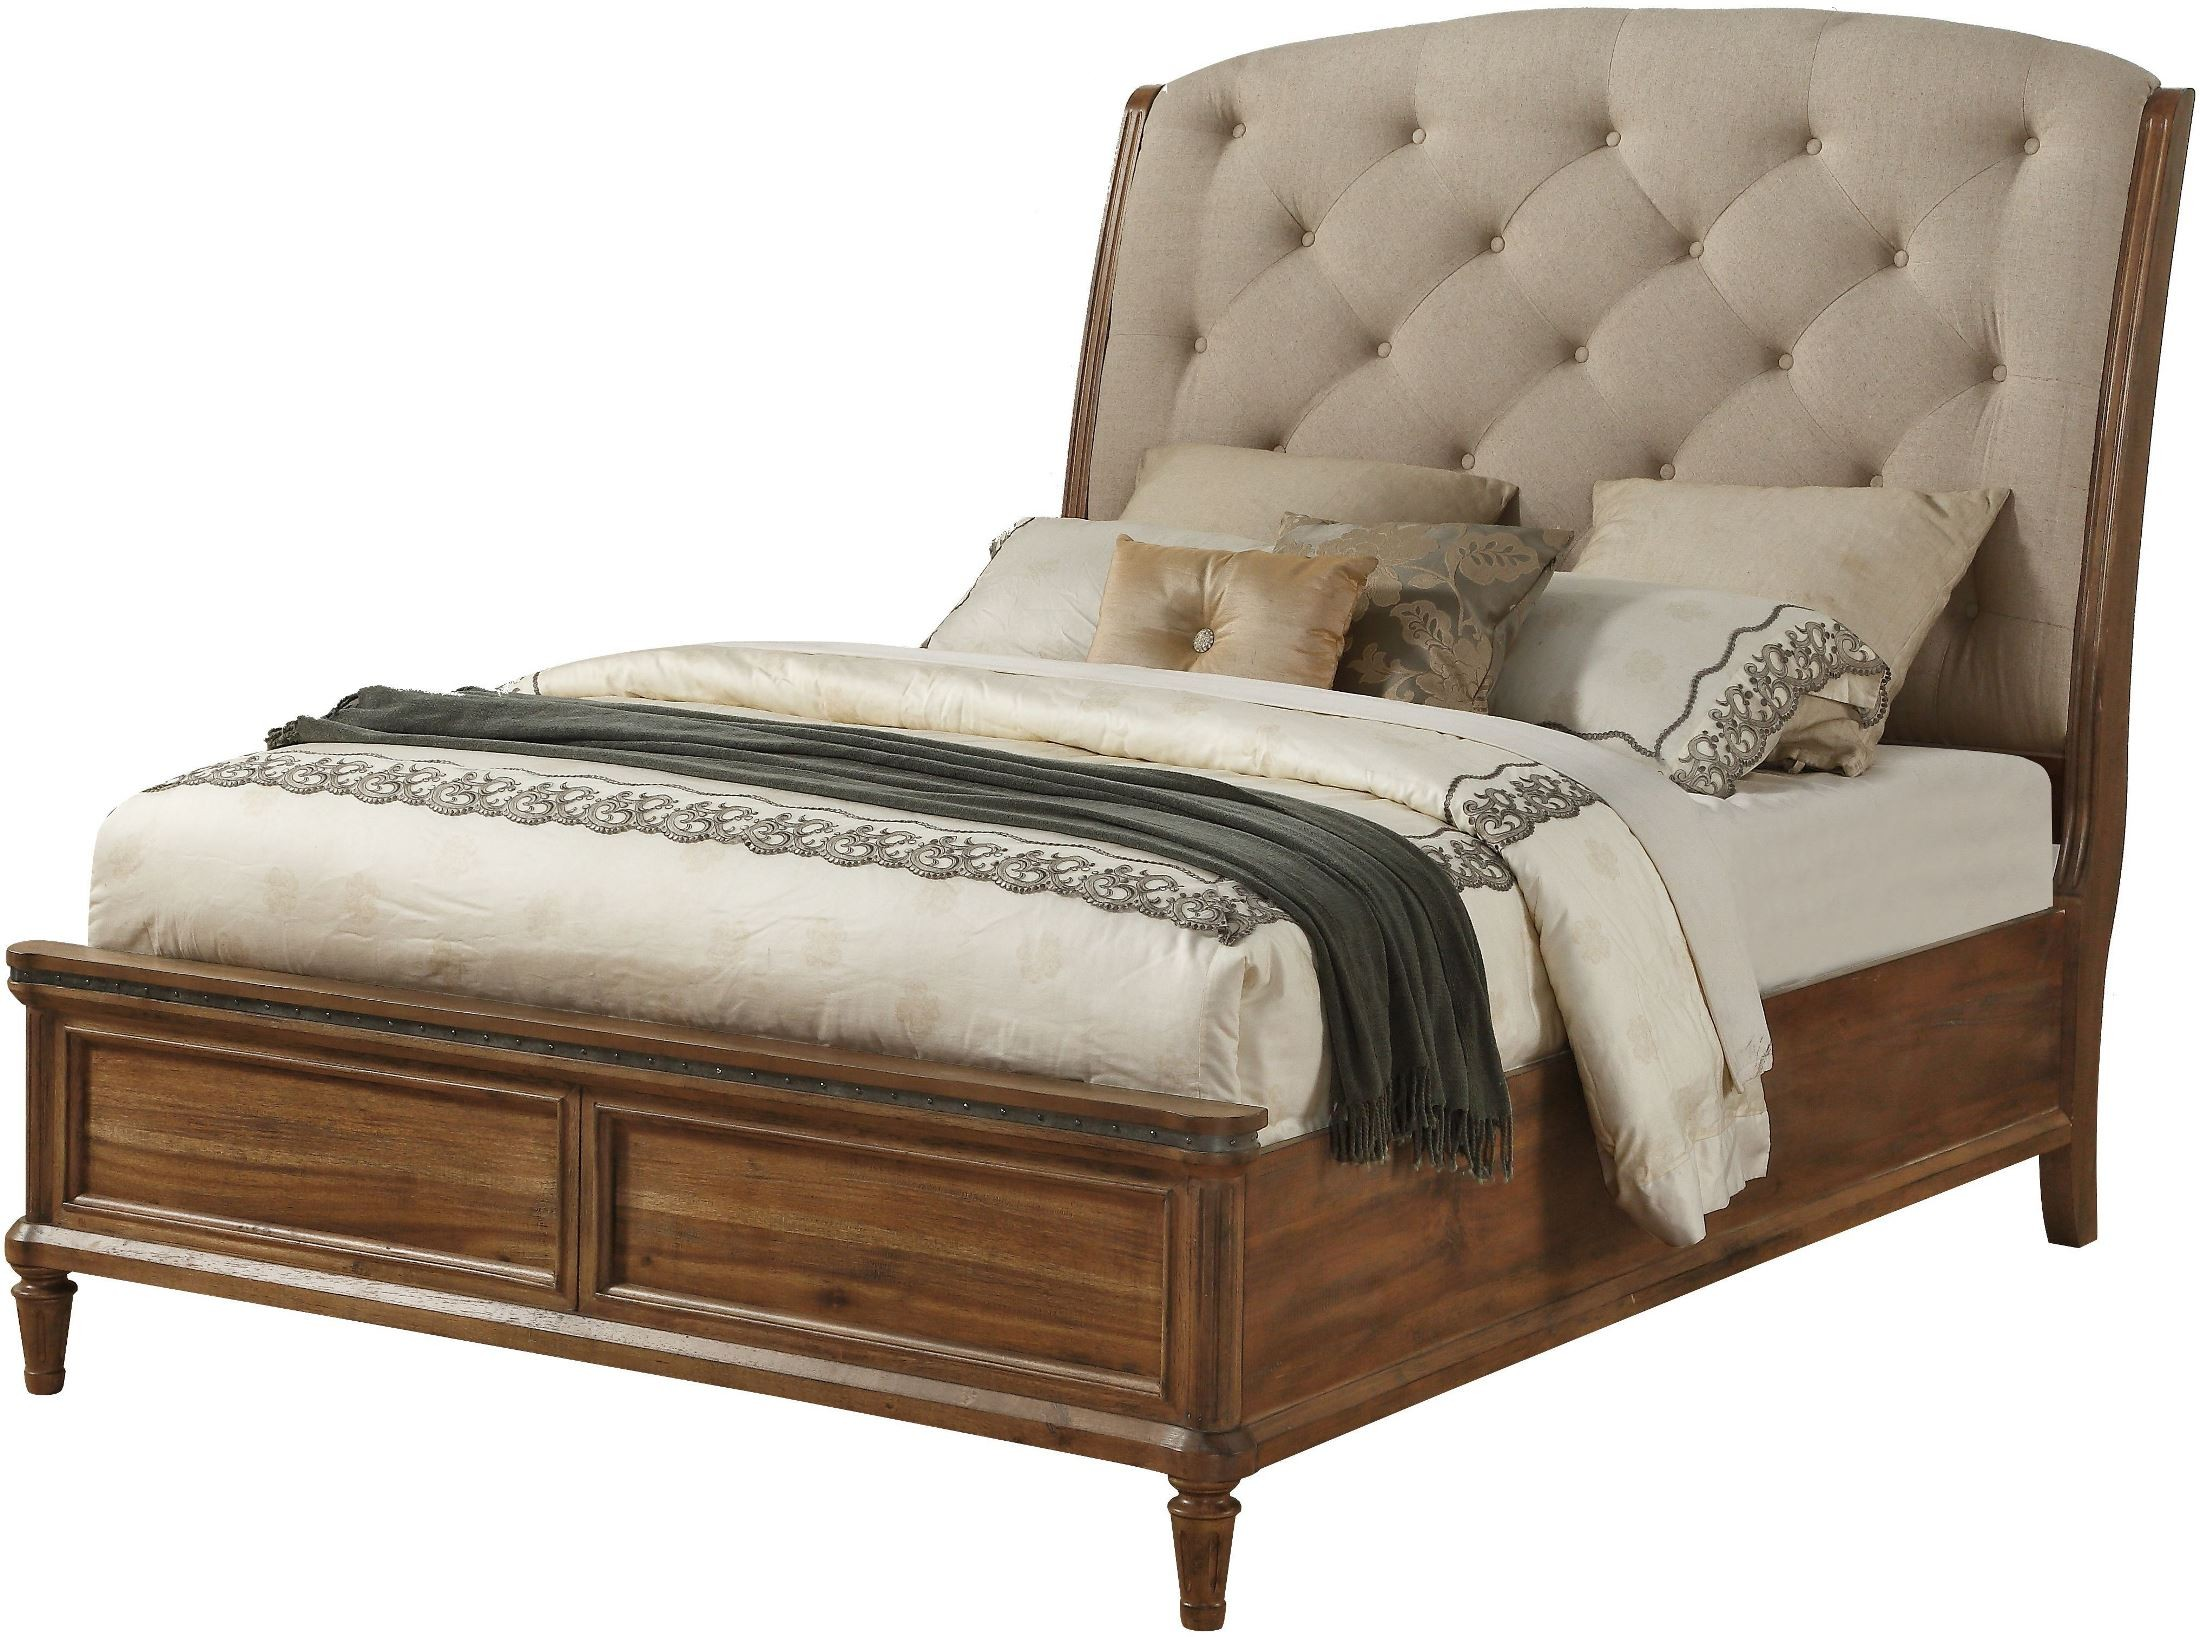 Distressed Blonde Queen Upholstered Sleigh Bed From Avalon